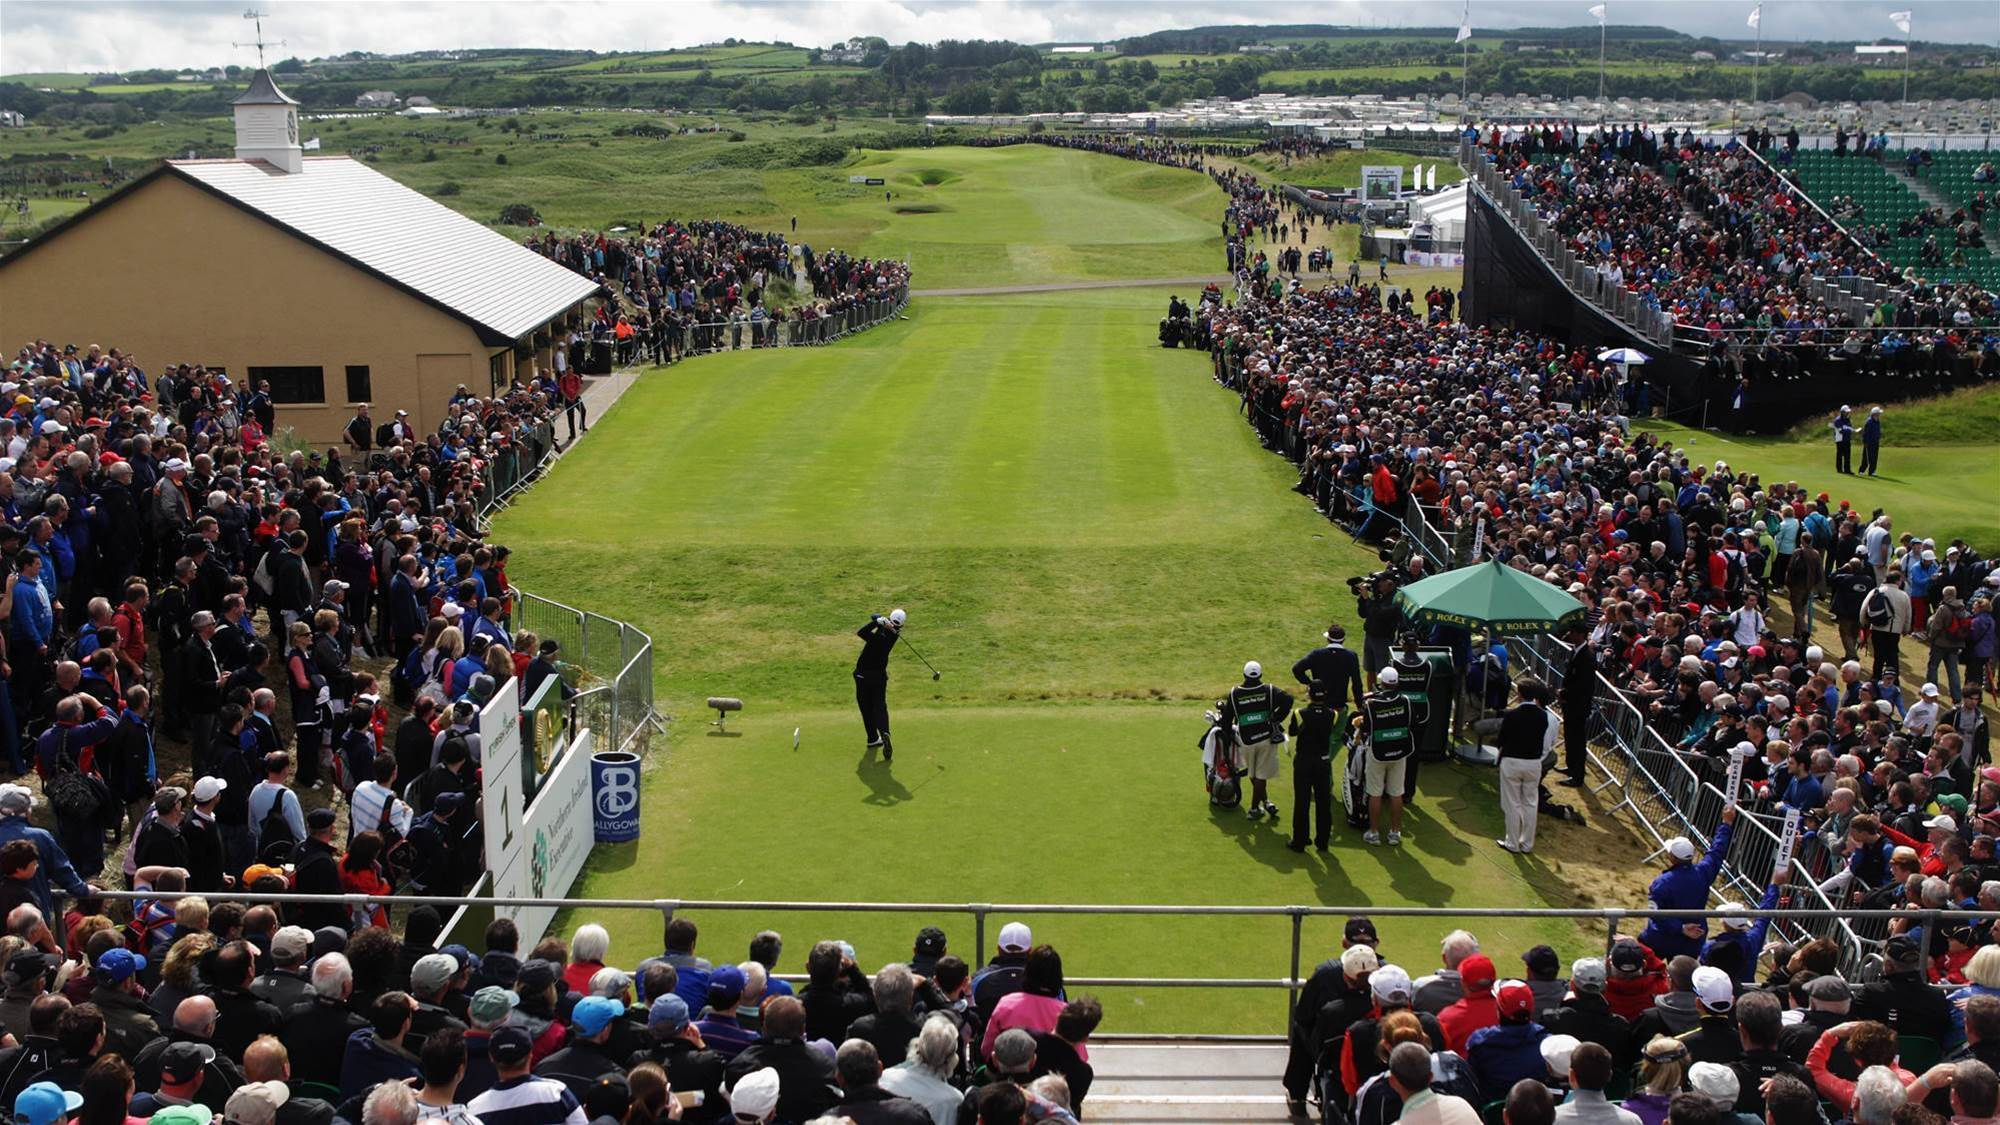 Your chance to play at The 148th Open in Northern Ireland